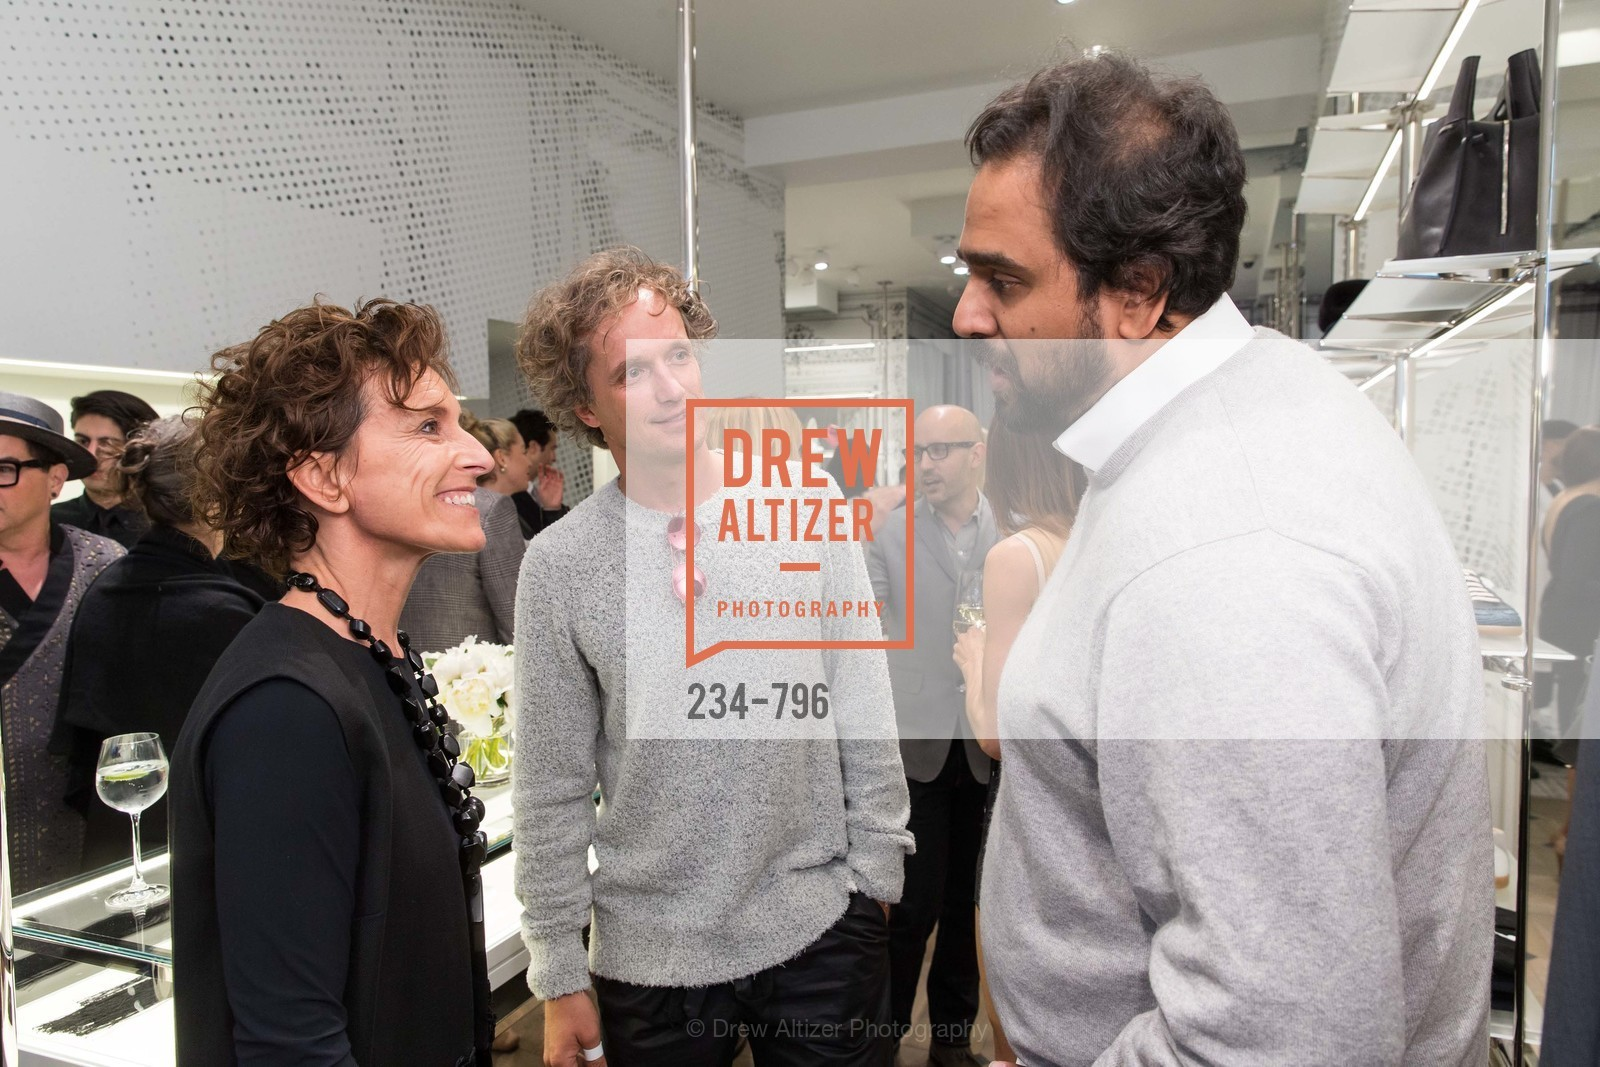 Monica Voltolina, Yves Behar, Hosain Rahman, MAISON MARGIELA San Francisco Boutique Grand Opening Event, US, April 24th, 2015,Drew Altizer, Drew Altizer Photography, full-service agency, private events, San Francisco photographer, photographer california